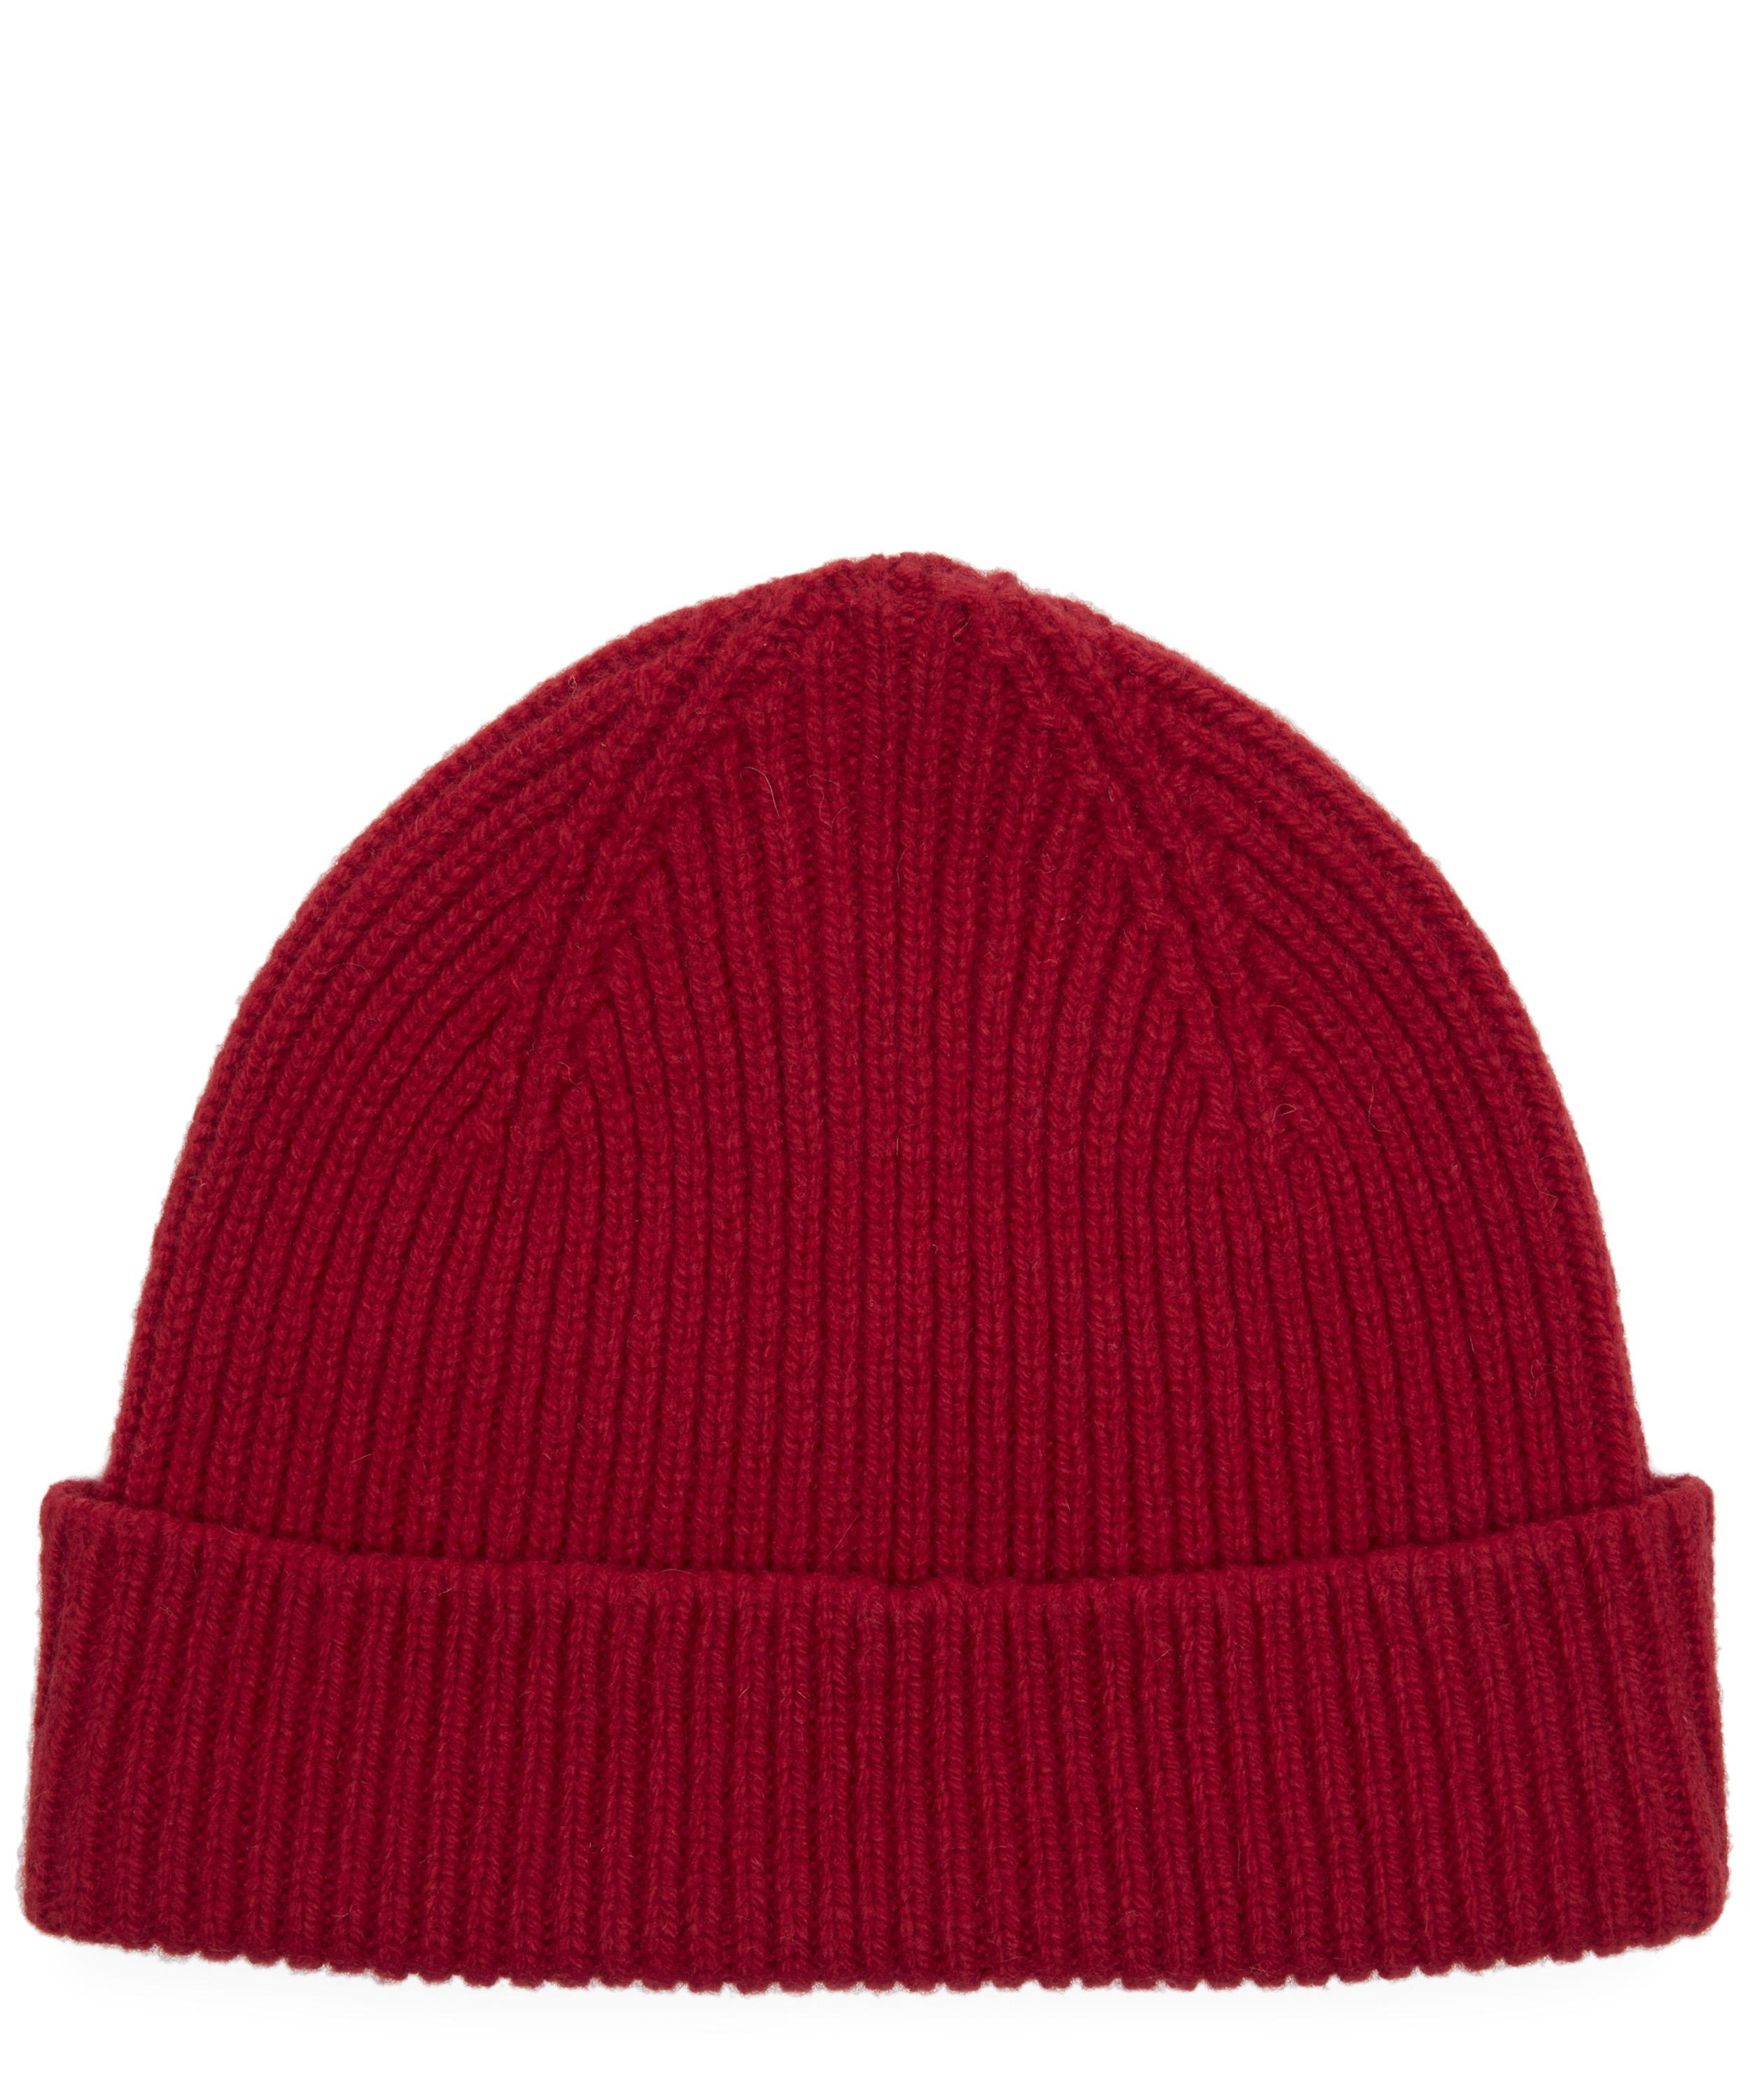 cfb8fcbc071 Lyst - Paul Smith Cashmere Ribbed Beanie in Red for Men